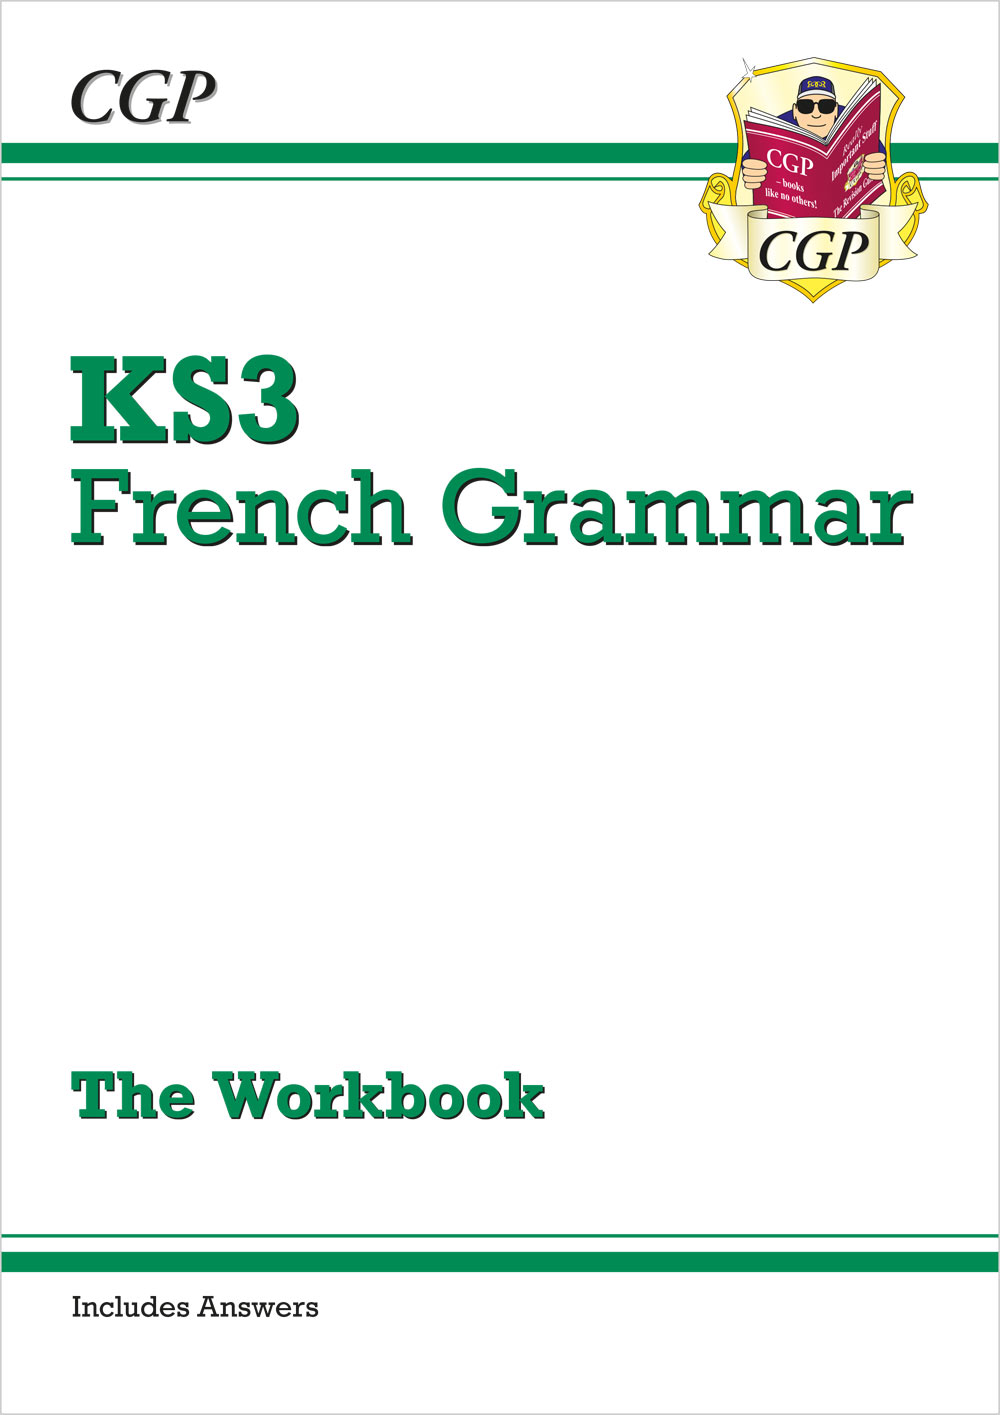 FGW31 - New KS3 French Grammar Workbook (includes Answers)